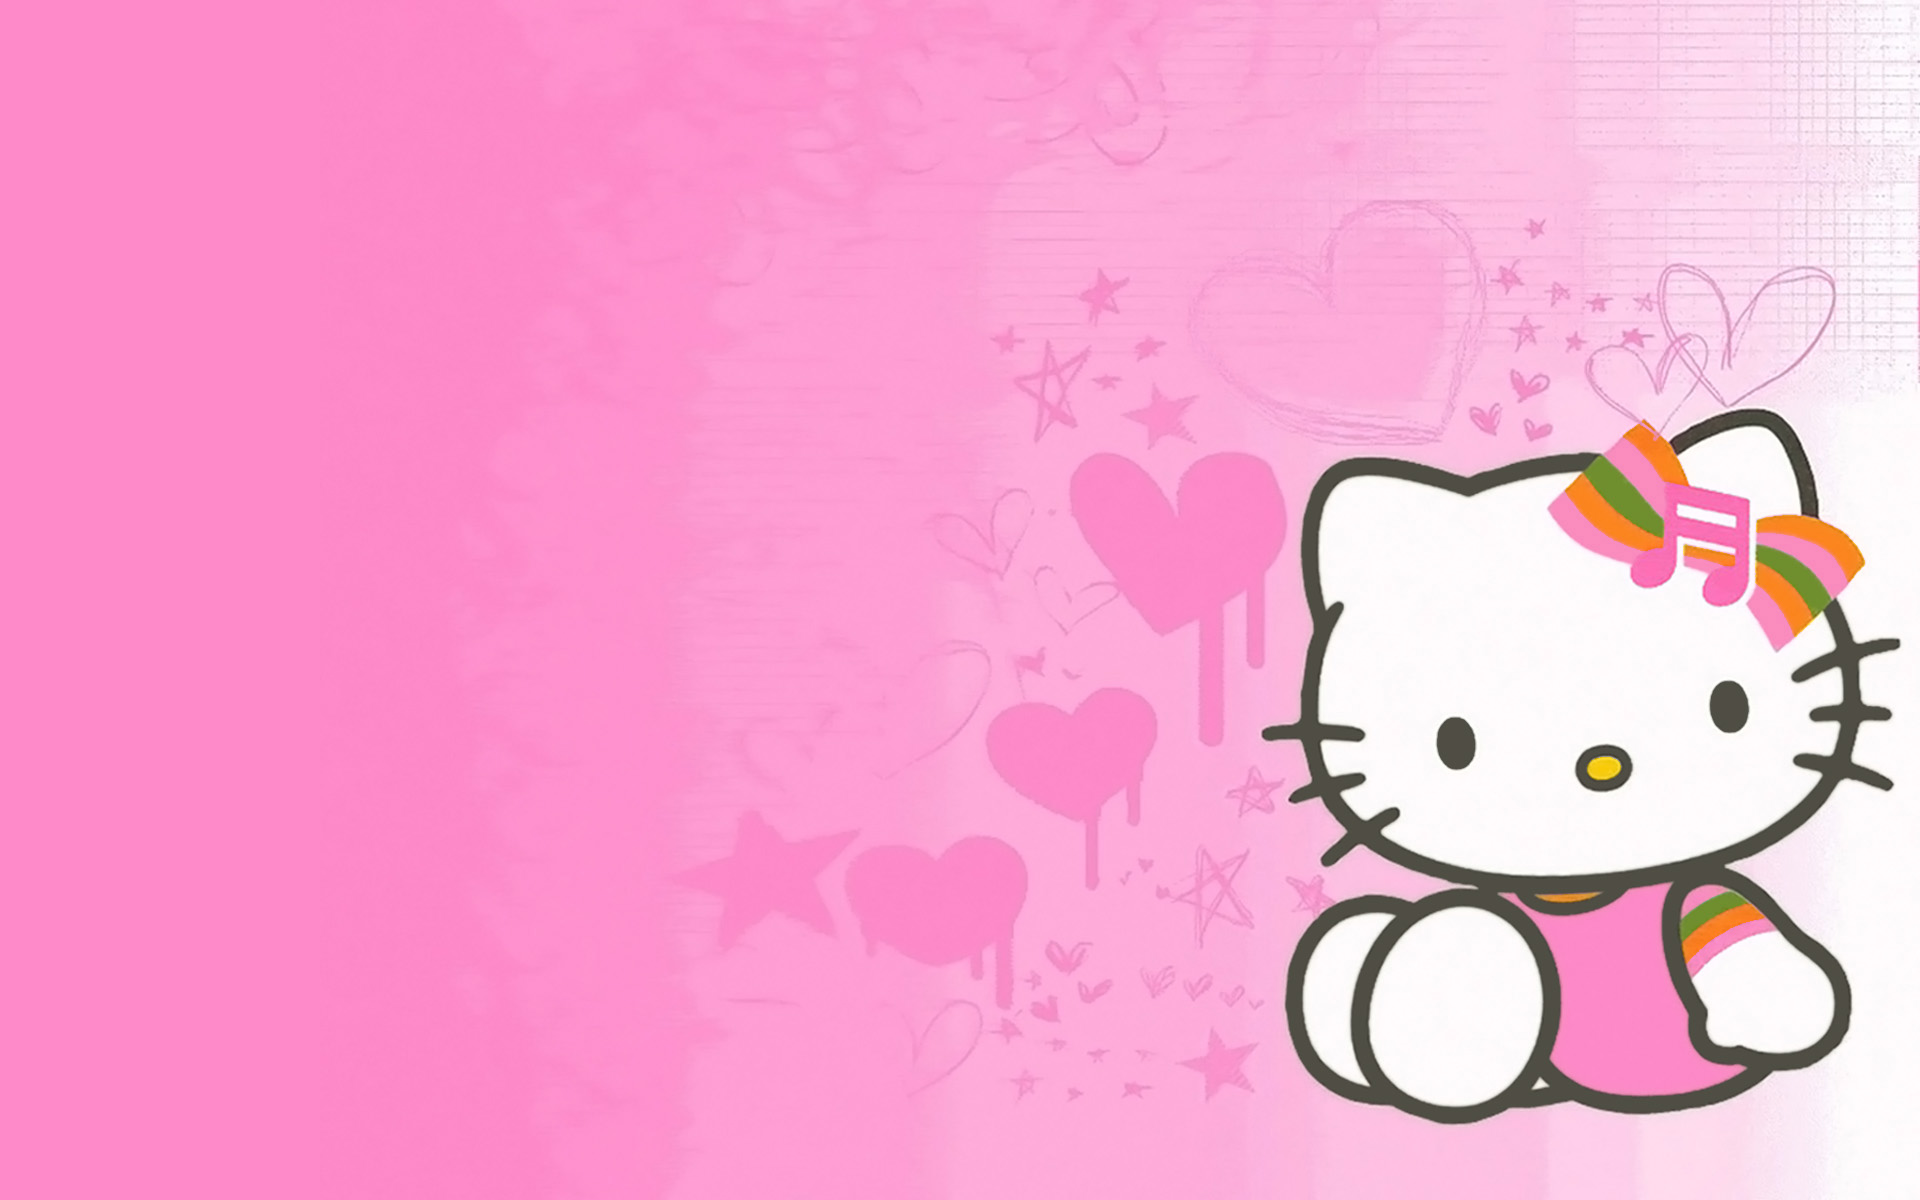 Hello Kitty wallpaper   261729 1920x1200